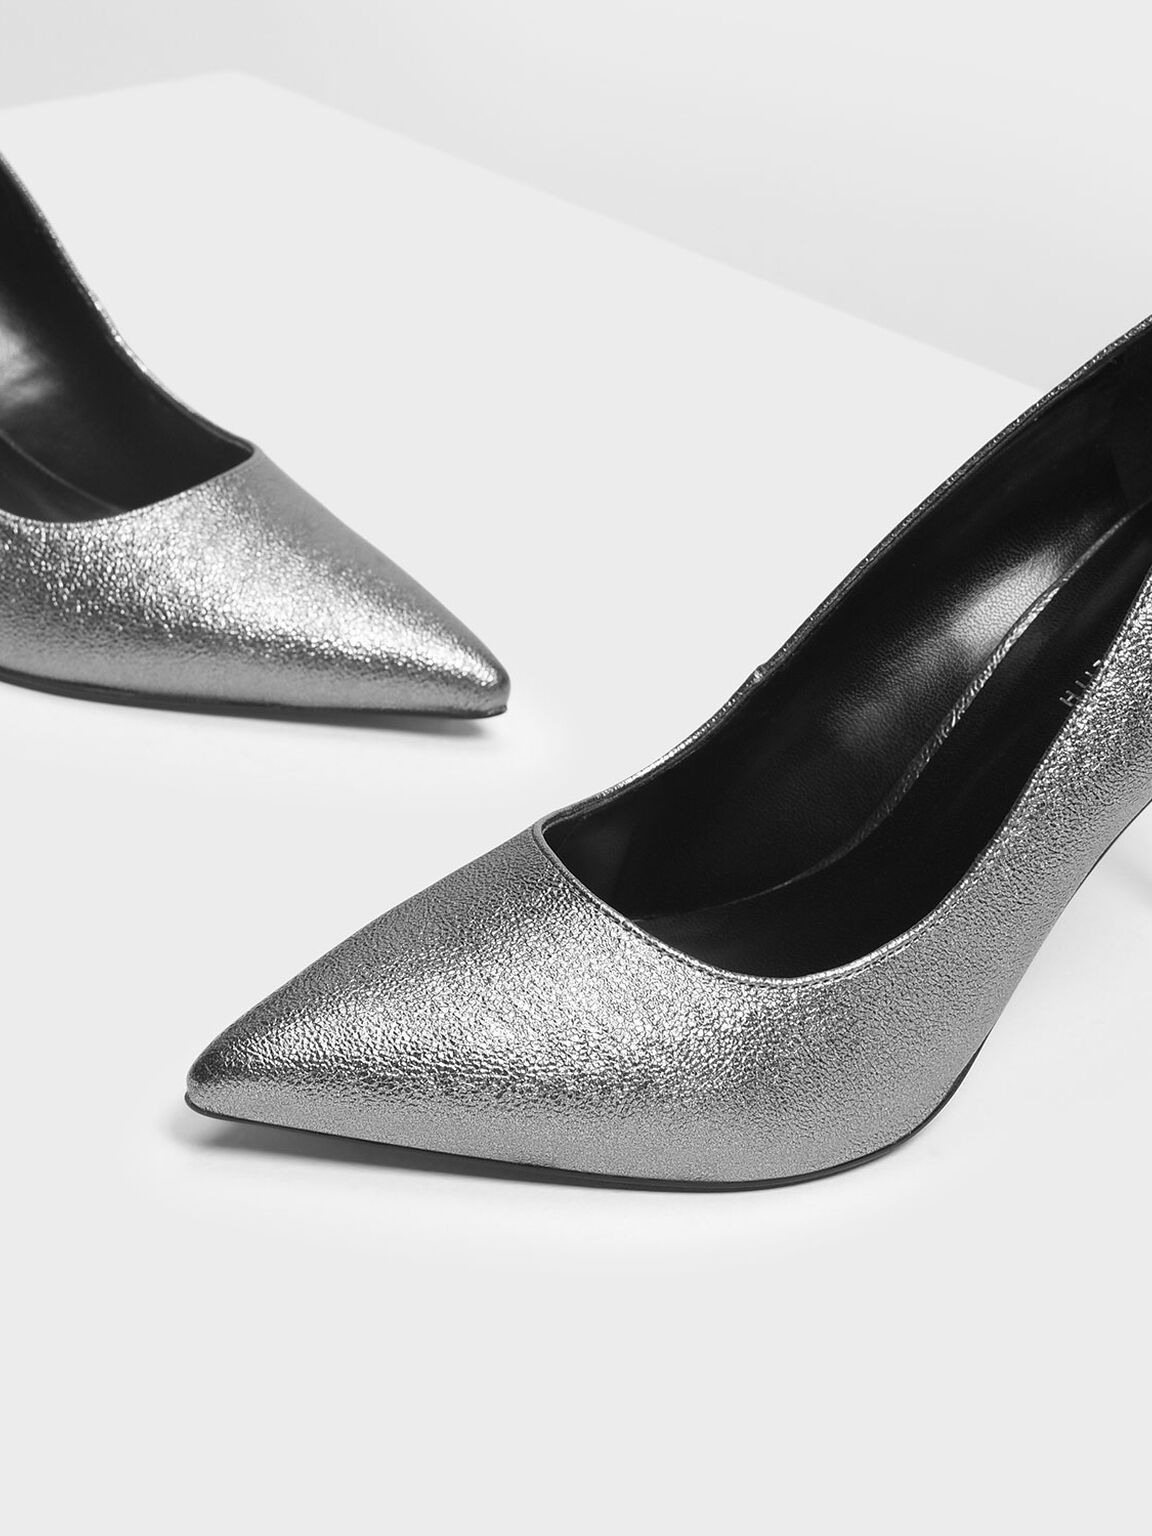 Classic Pointed Pumps, Pewter, hi-res